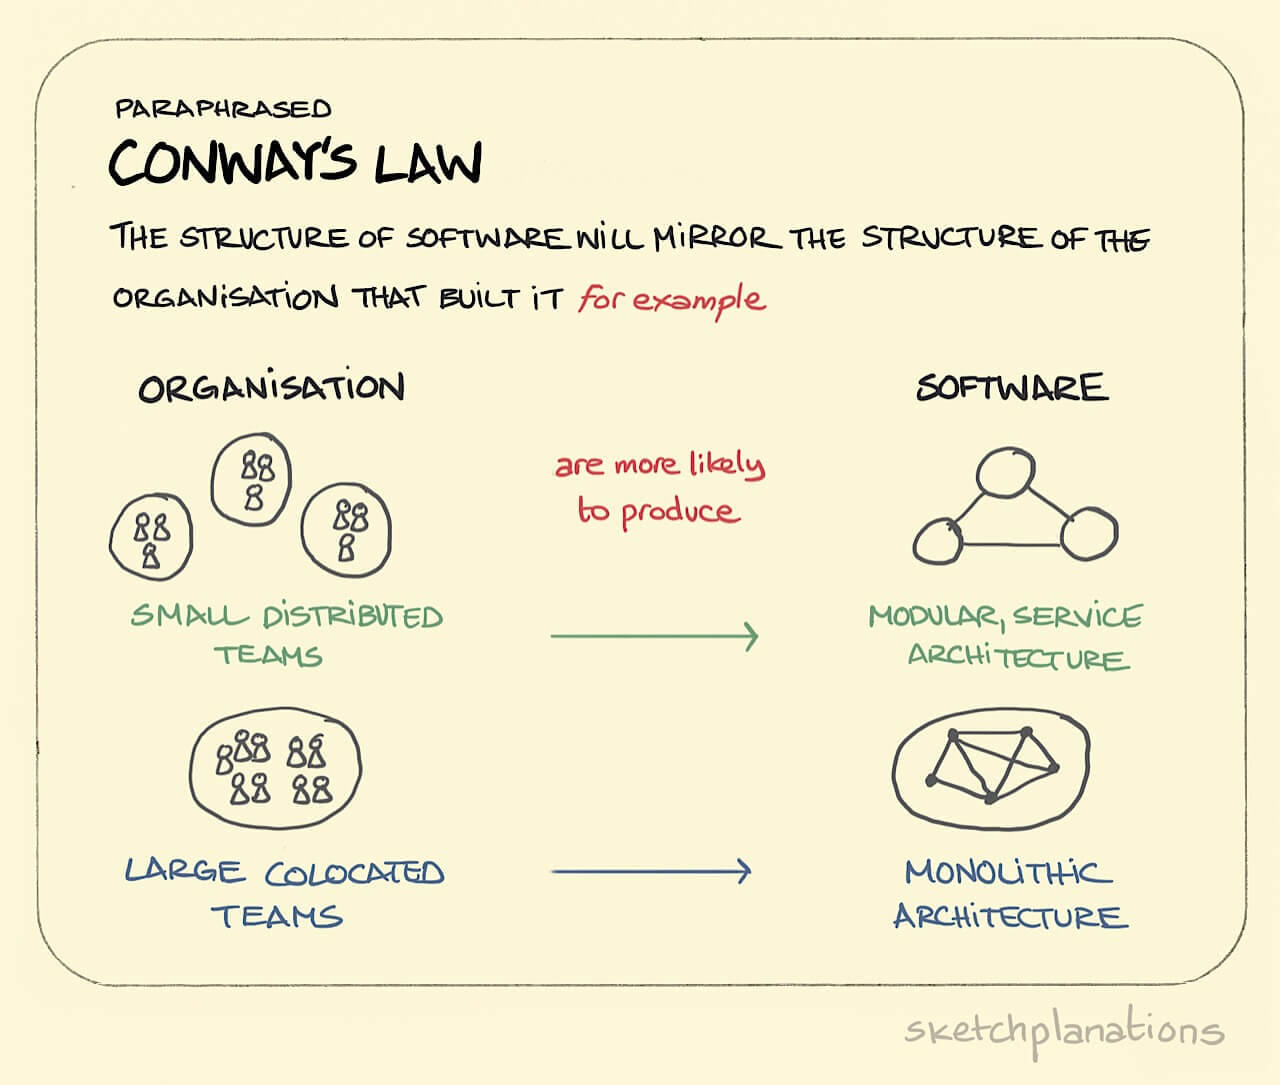 What is Conway's Law